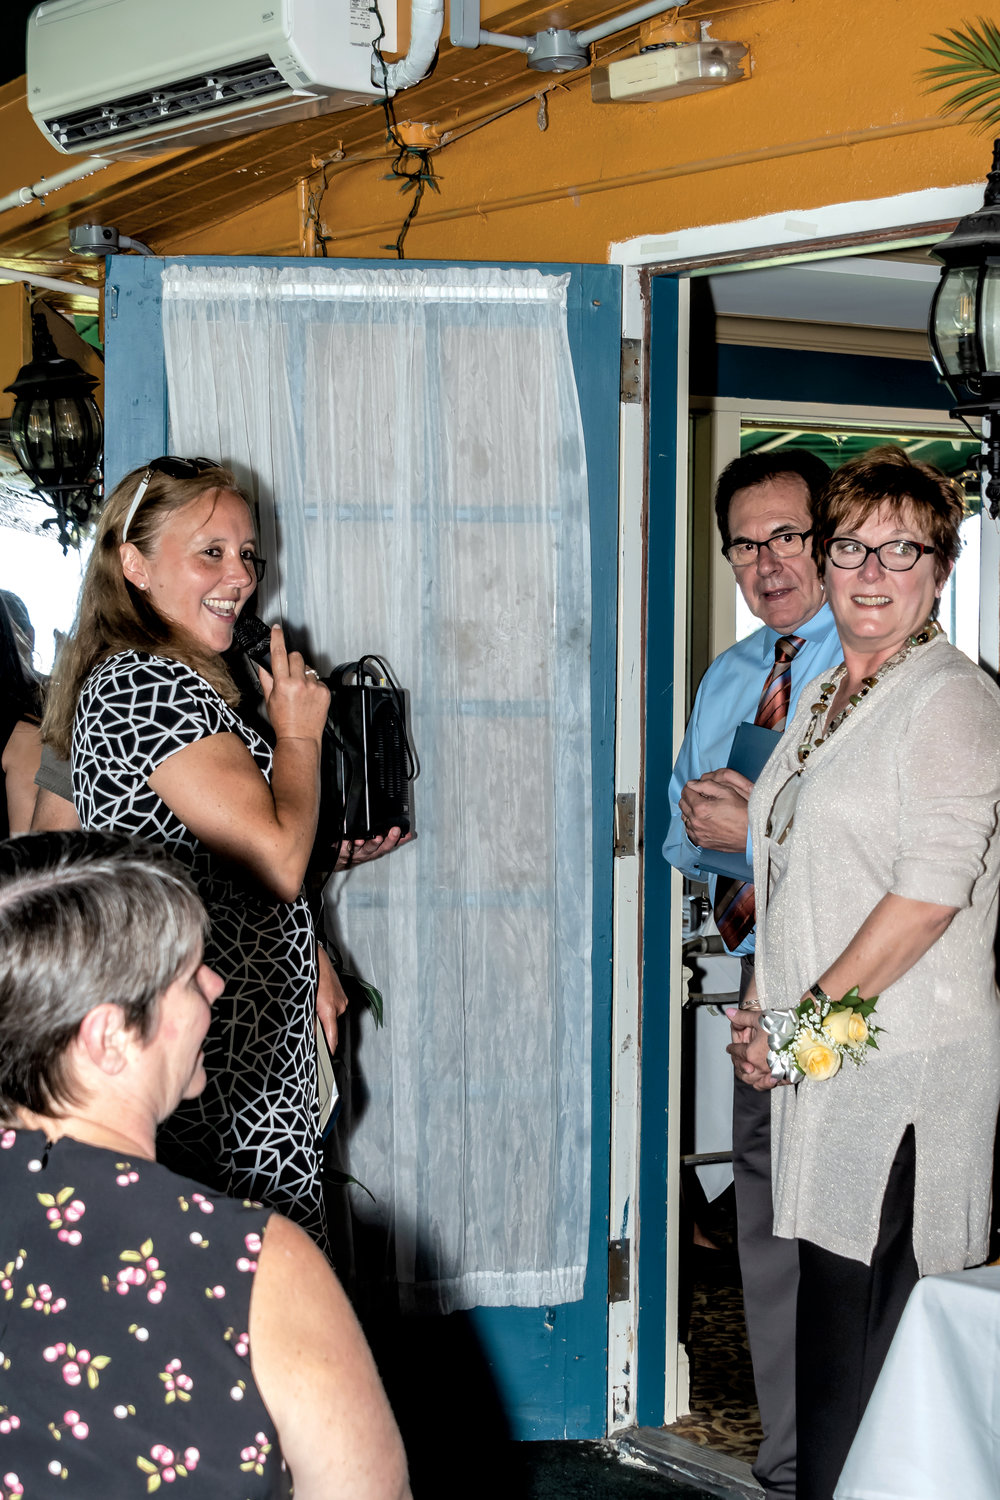 County Legislator Delia DeRiggi-Whitton, far left, expressed her appreciation for the Rev. Jim Phegley and his wife, Sarah Ann, at a farewell party at the View Grill. Phegley led the Glen Cove Christian Church for over 30 years.